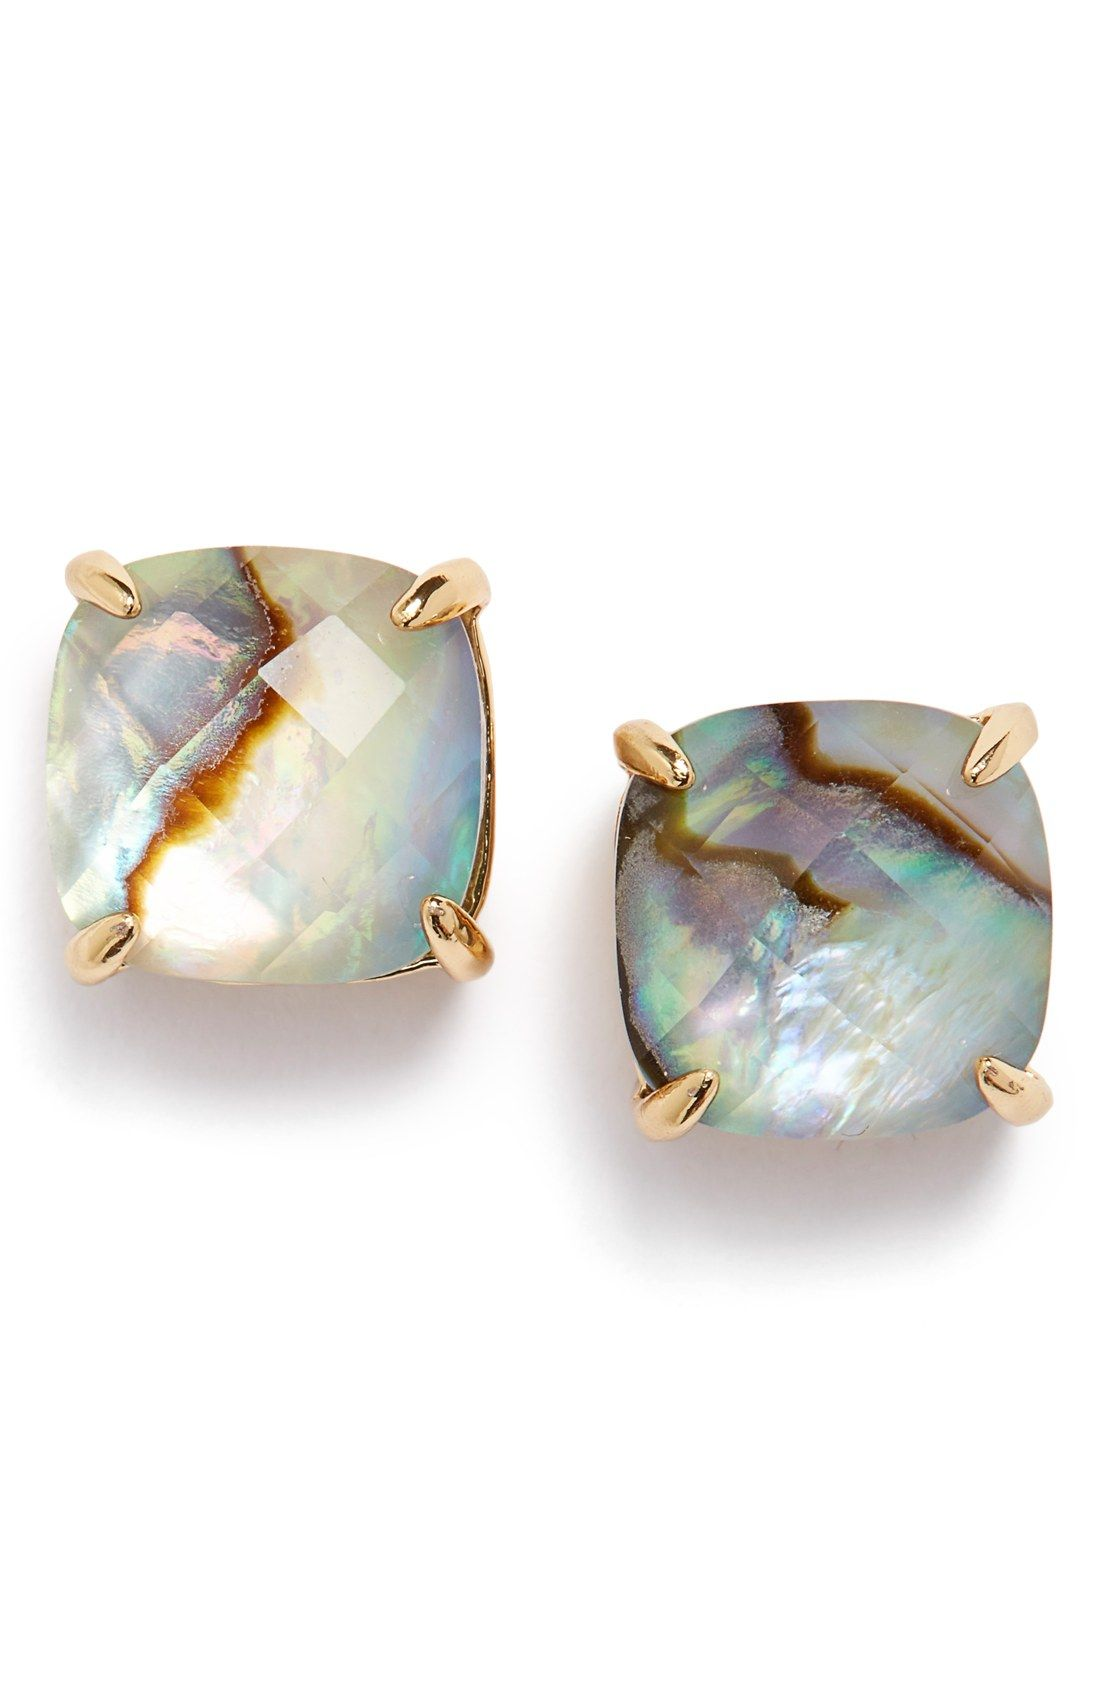 Kate spade new york mini small square semiprecious stone stud kate spade new york mini small square semiprecious stone stud earrings nordstrom arubaitofo Image collections